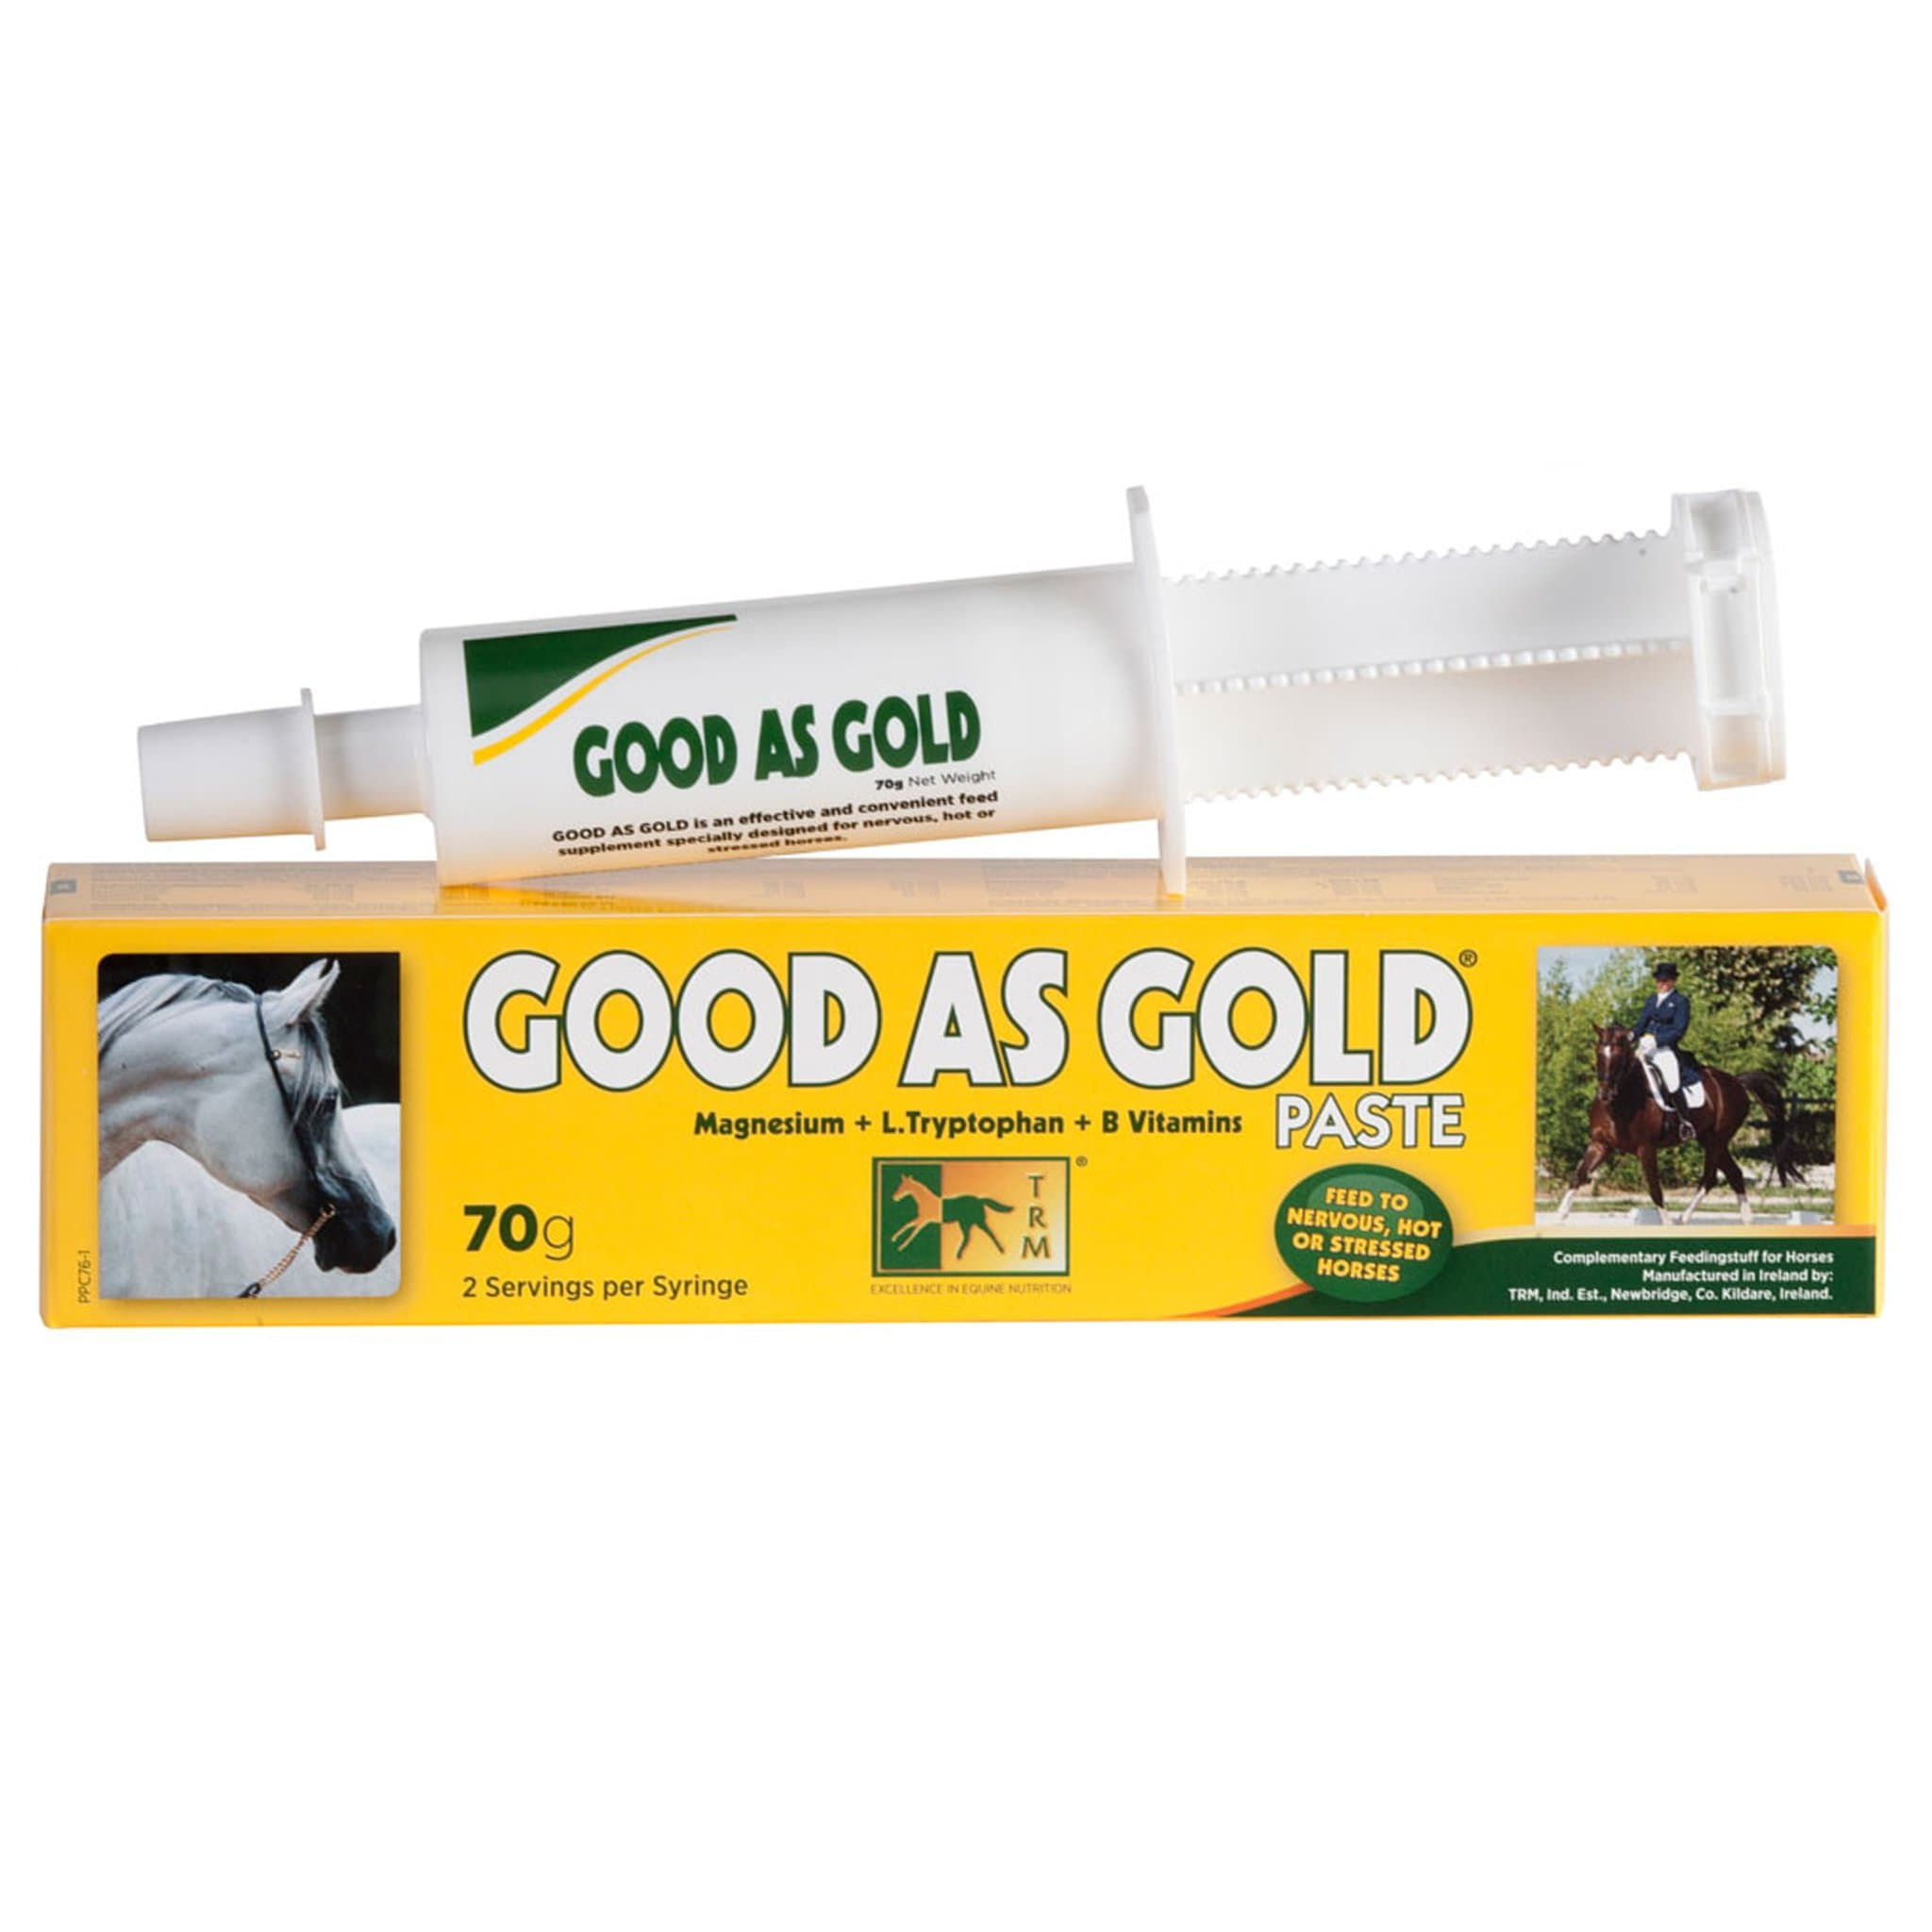 Good as Gold Paste 3226